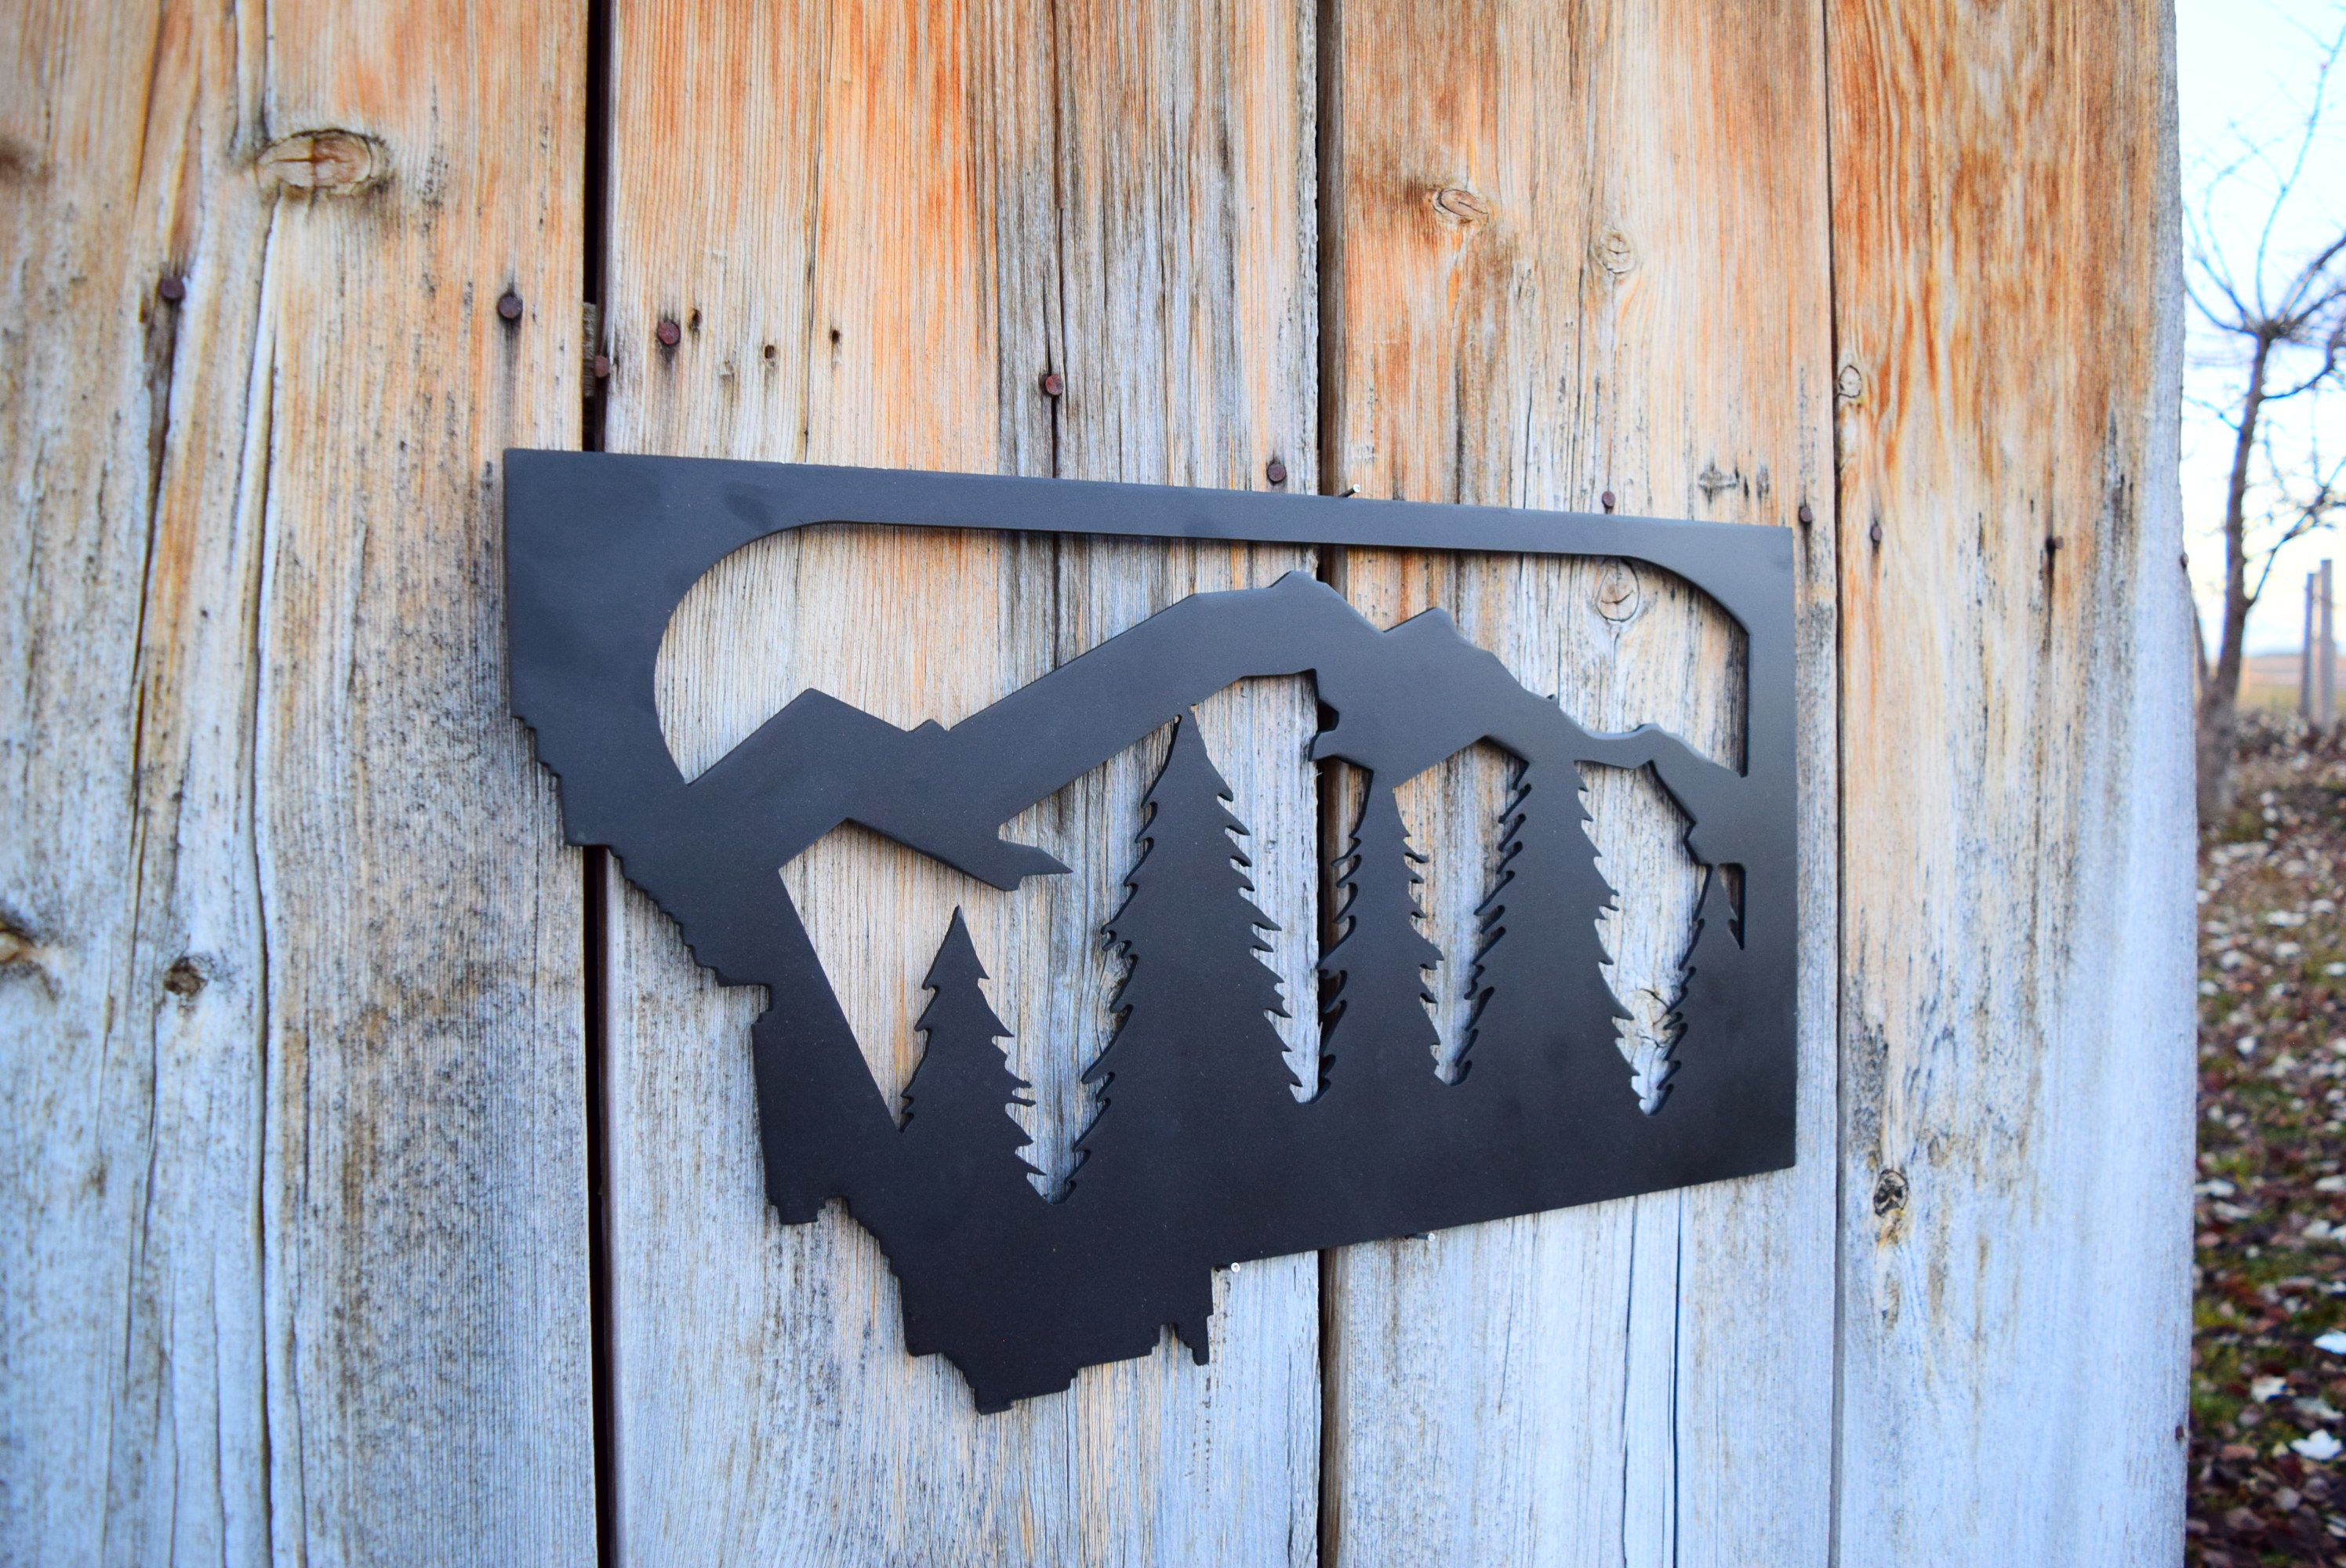 Copy Of Metal Montana Nature Sign Montana Mountains Wall Art Steel Nature Wall Nature Wall Art Mountain Wall Art Nature Wall